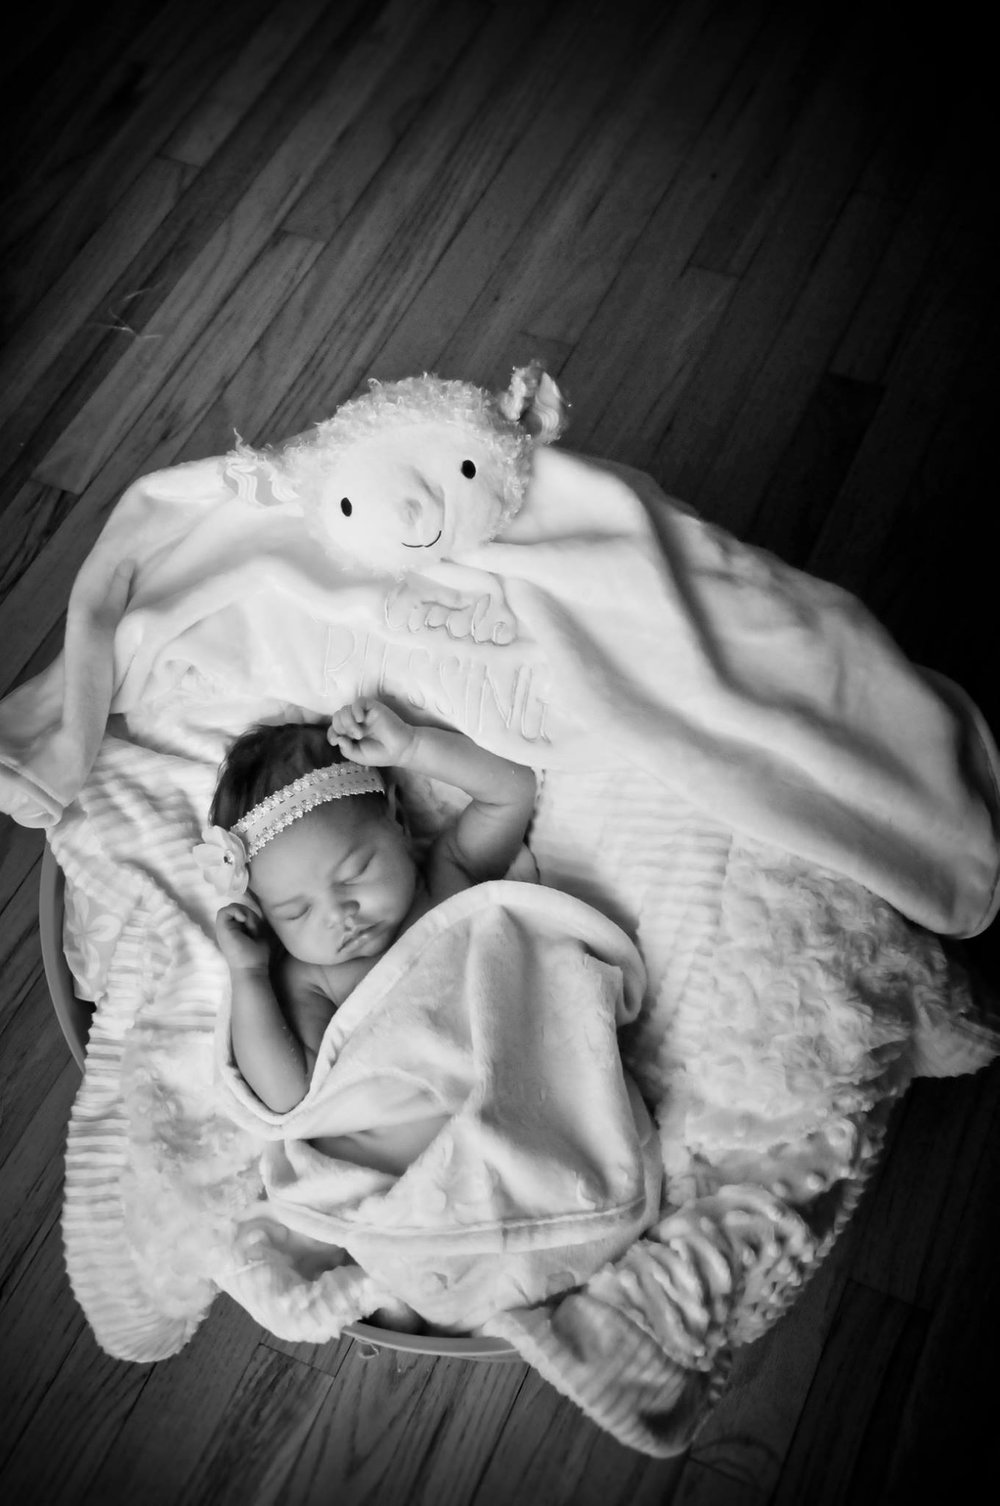 CarrieWestonStudios_CarrieAnneGonzalez_Portrait_wedding_Photography_Northport_Newborn_Isabelle12.jpg